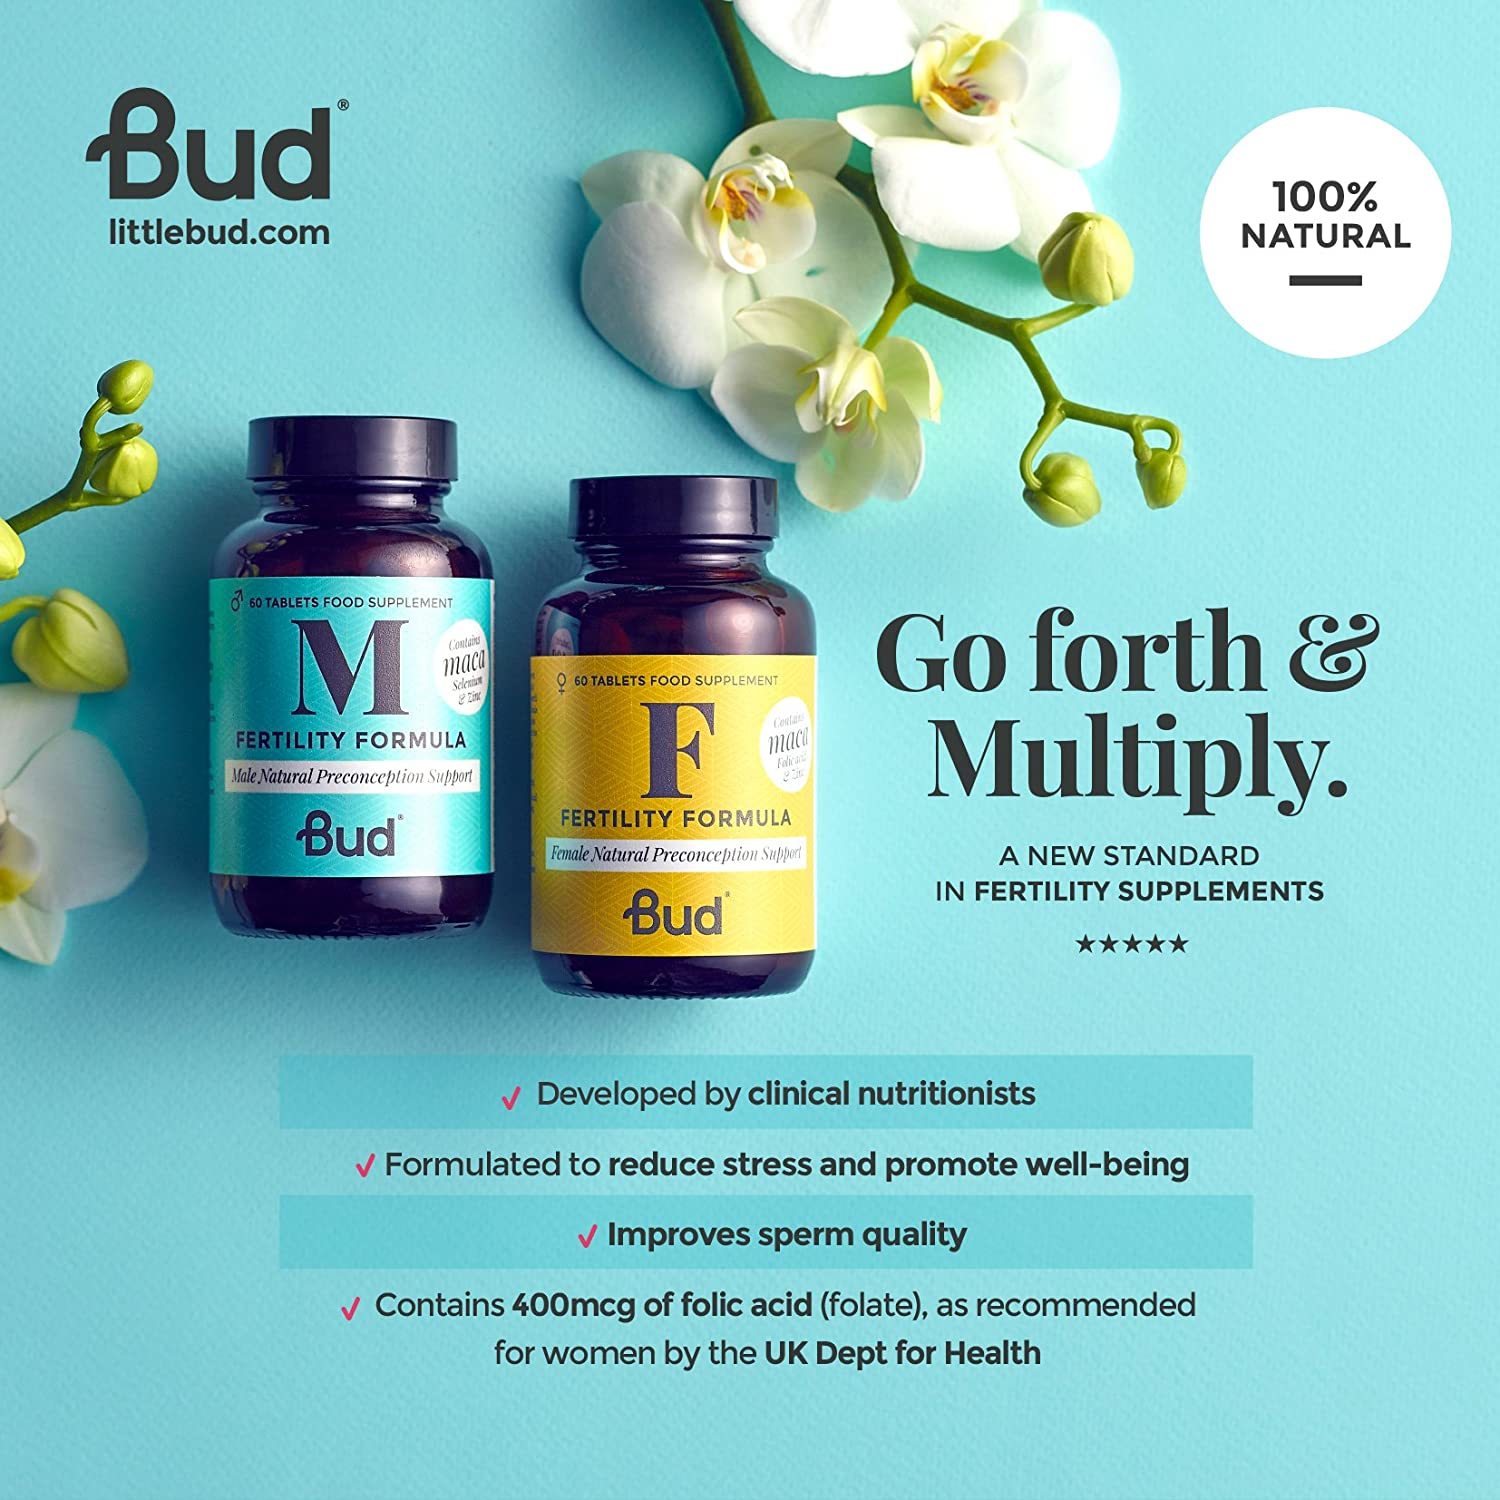 Bud Female Fertility Supplement Natural Vitamins For Cottage Happy Shower Sex On The Beach 250 Ml Cranberry Women With Maca Folic Acid Zinc Vitamin D 60 Tablets Made In Uk